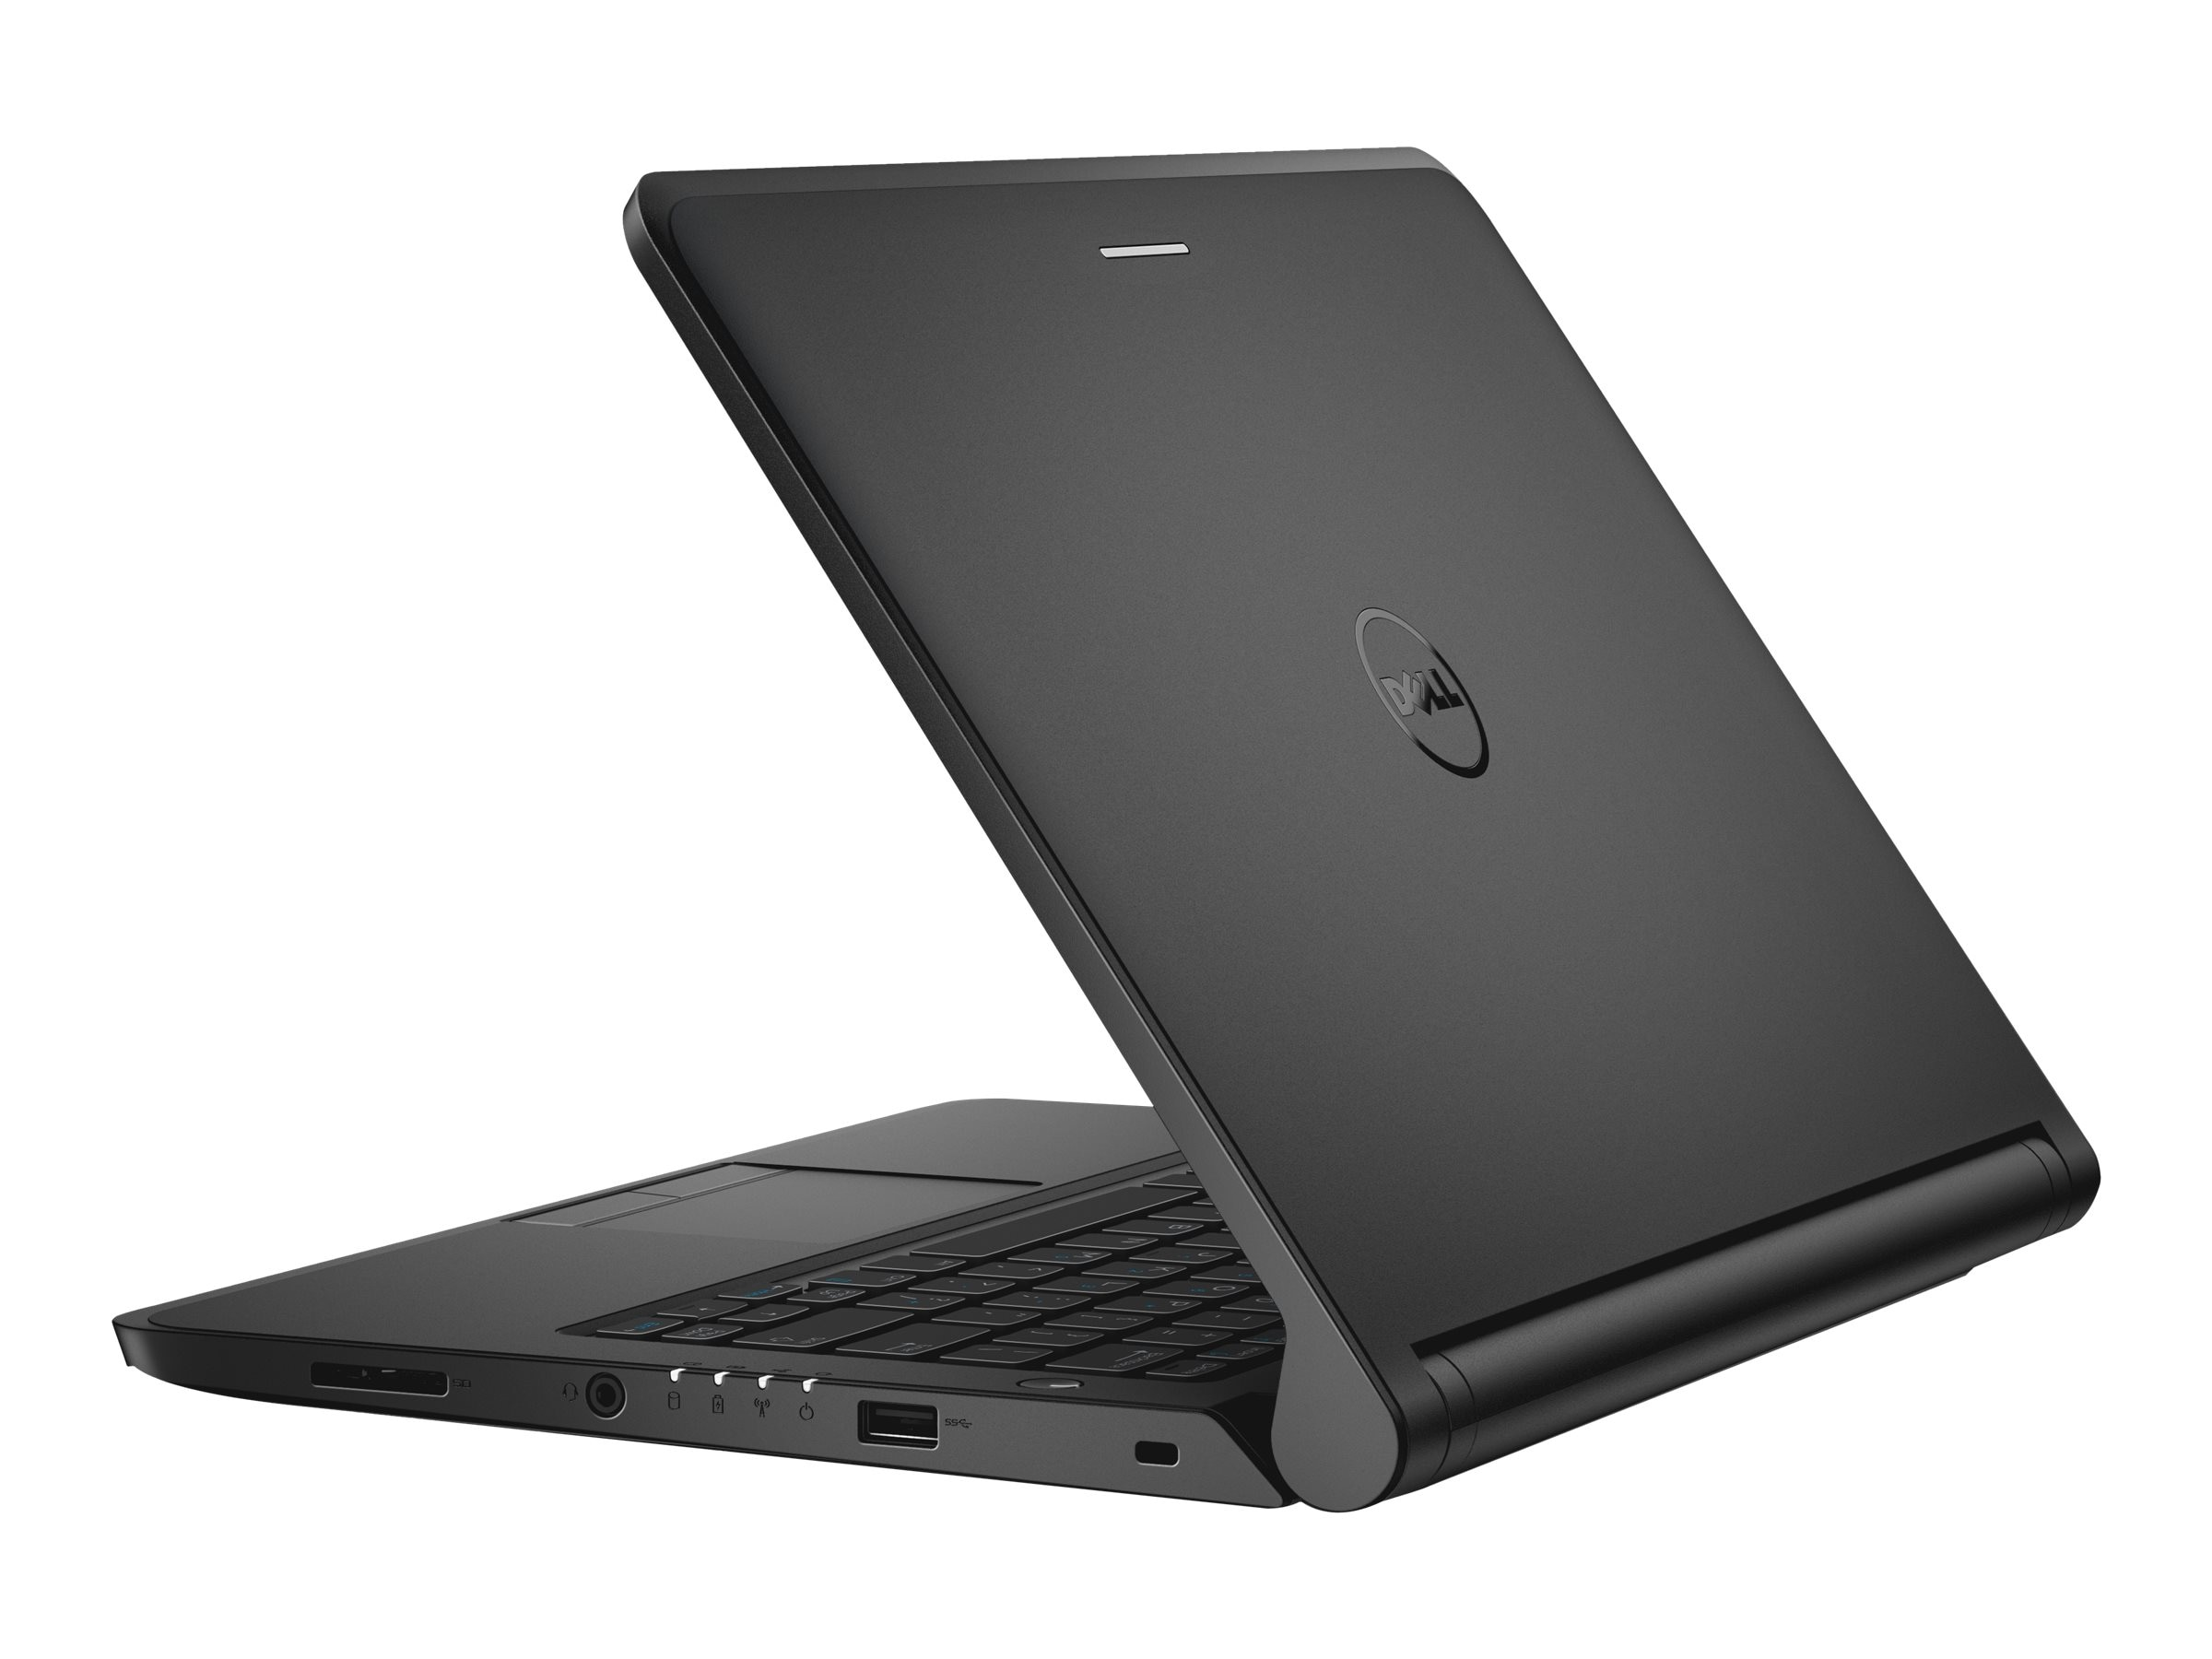 Dell WD5D5 Image 6